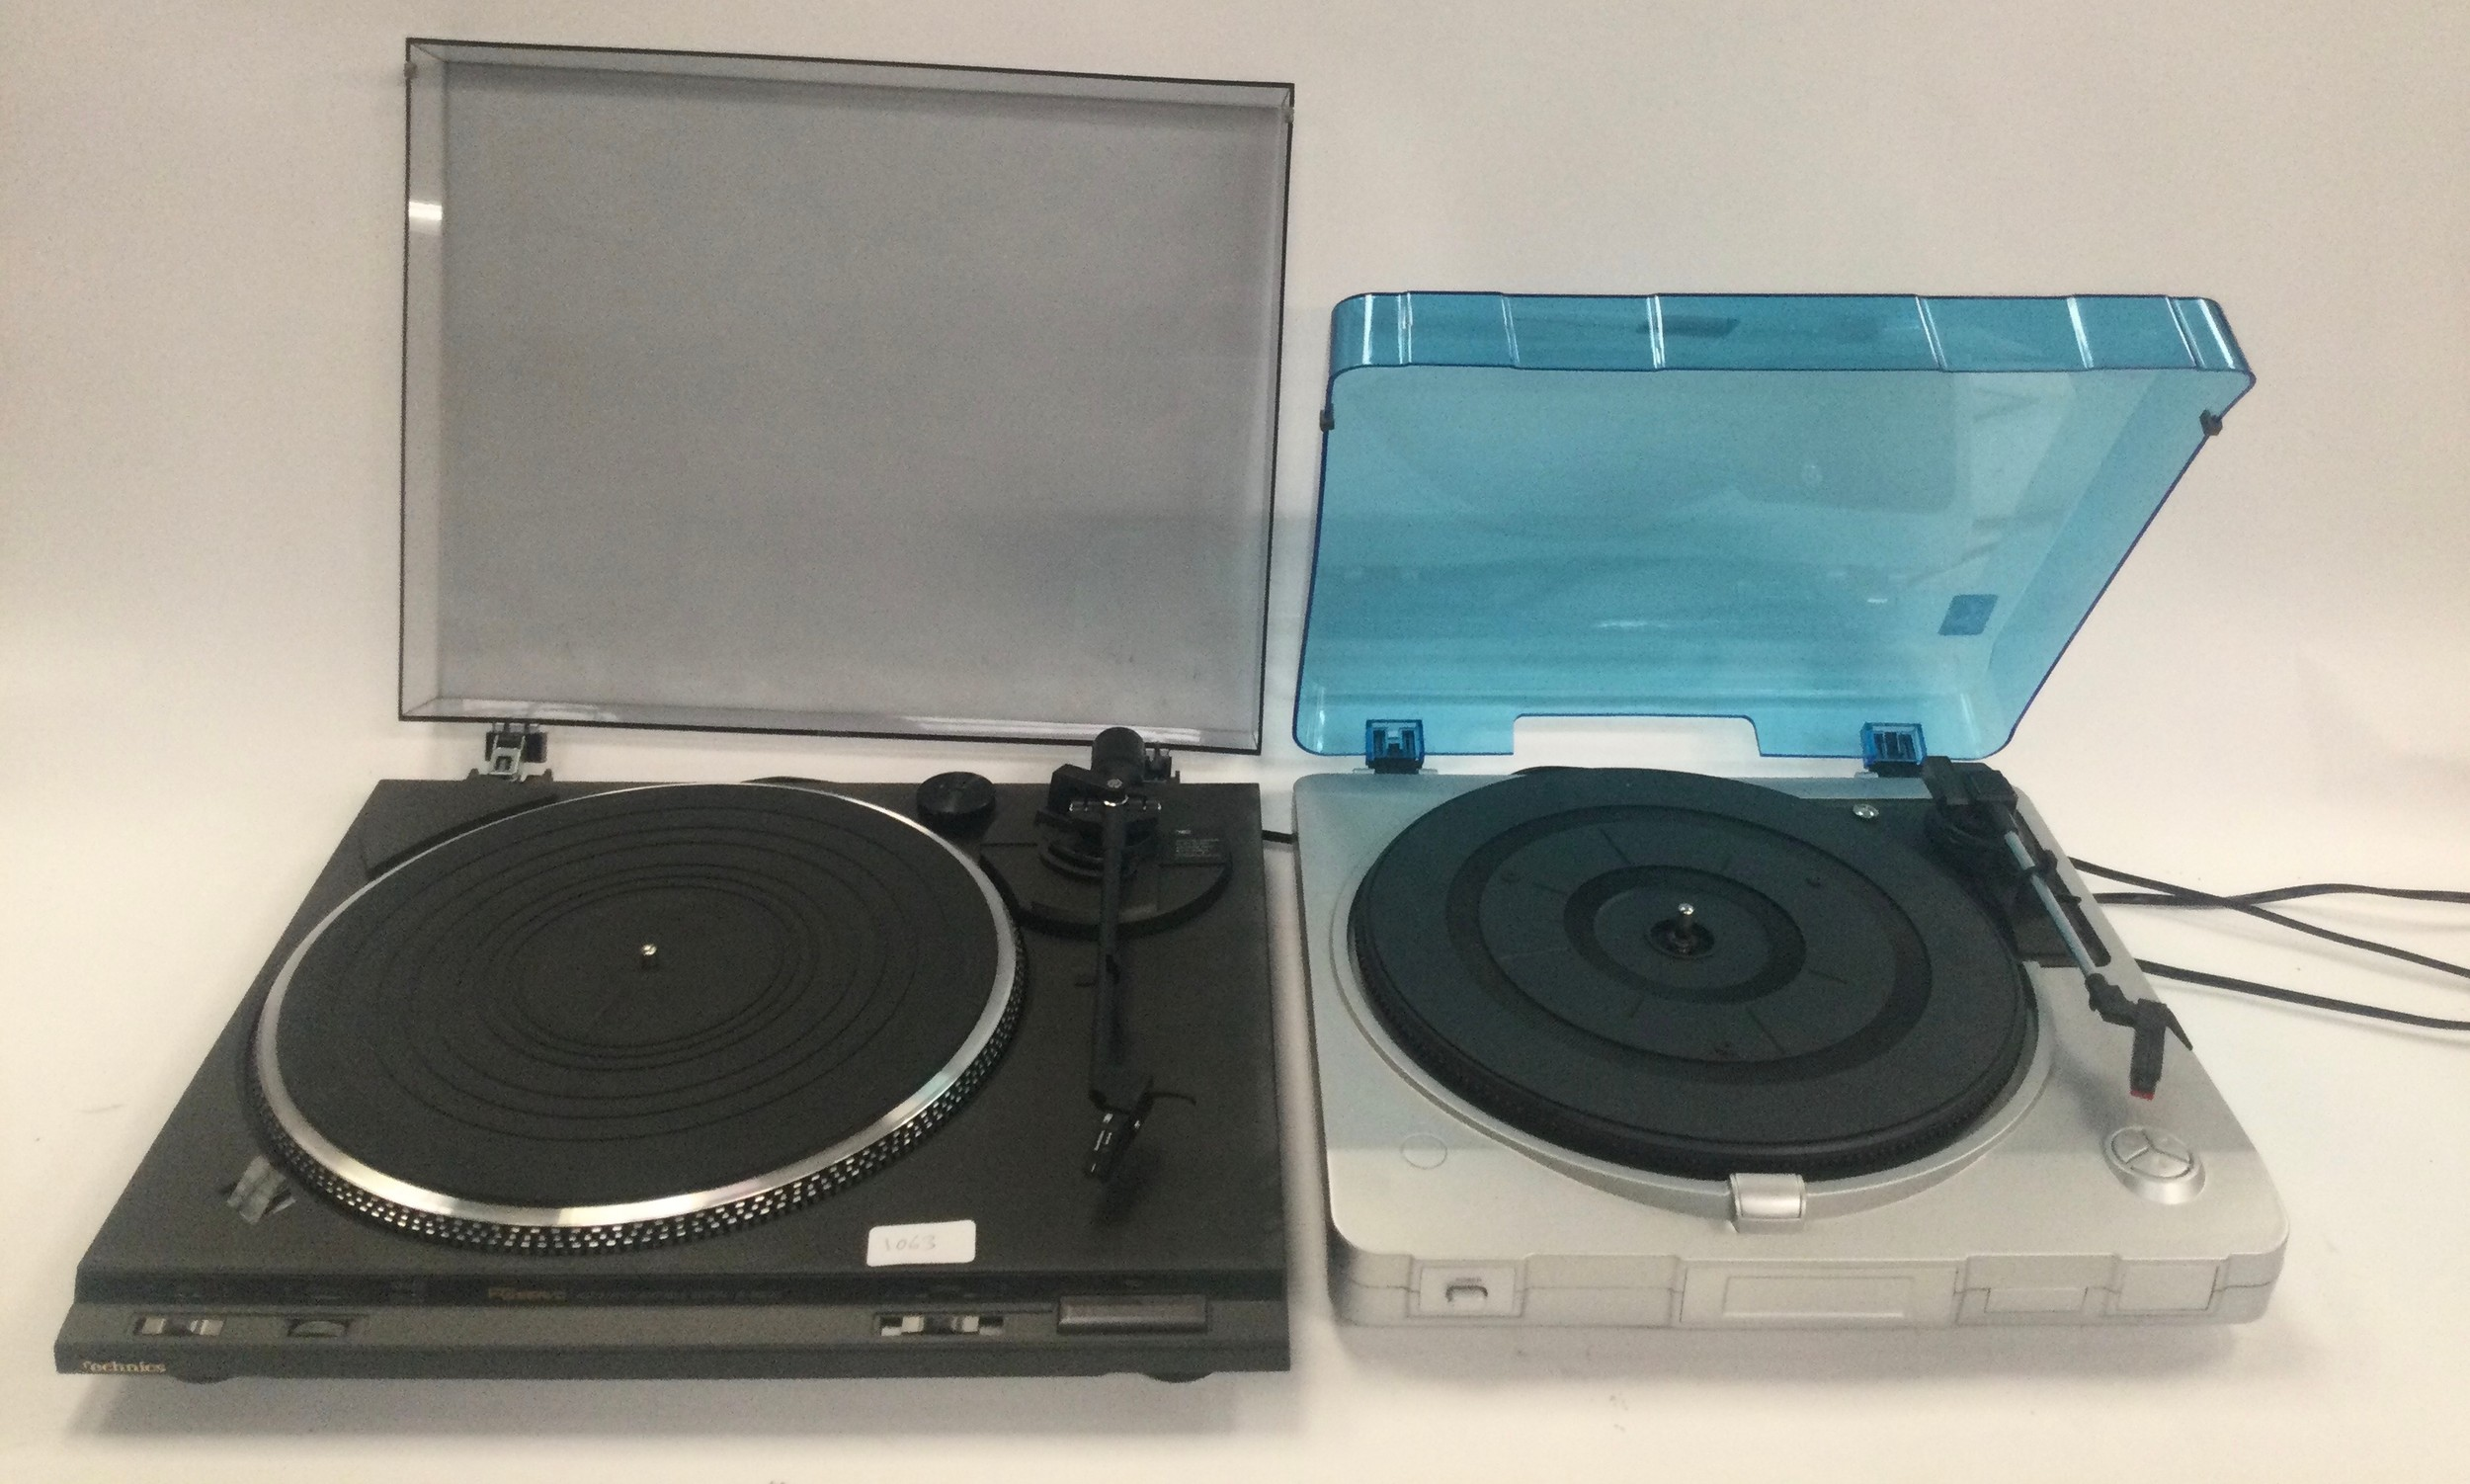 Technics SL8022D turntable together with a Prolectrix mini turntable.